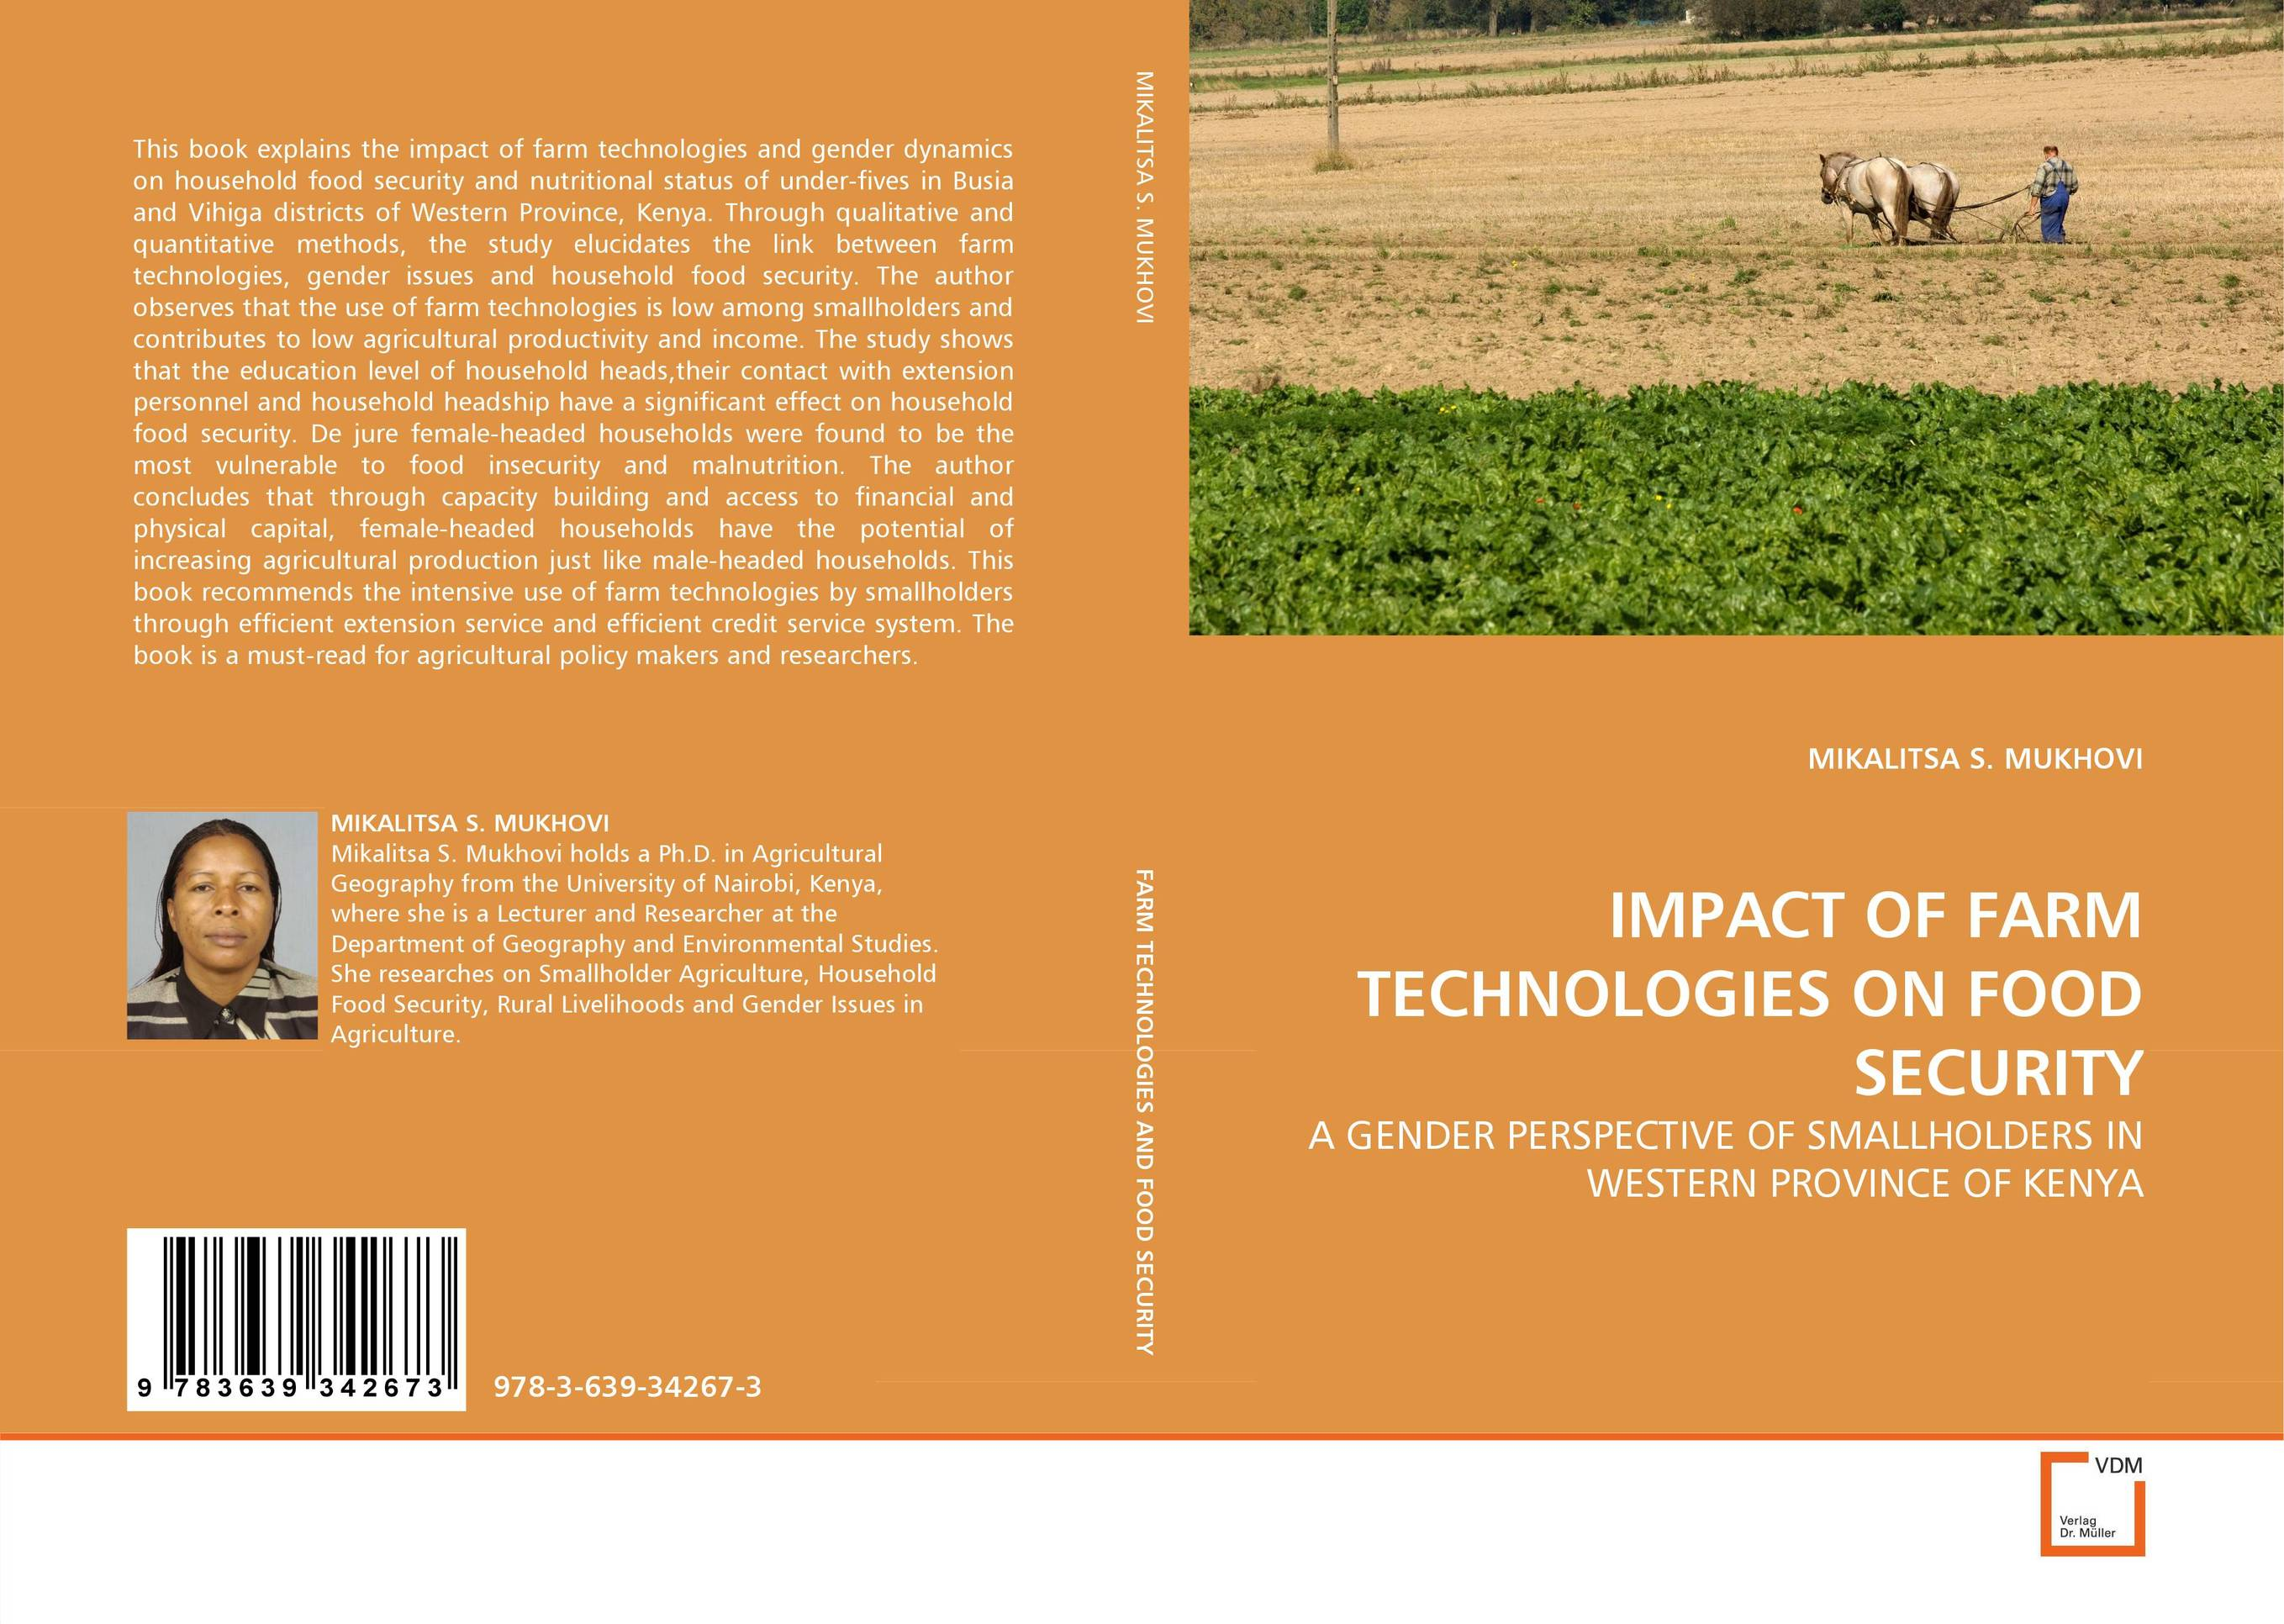 IMPACT OF FARM TECHNOLOGIES ON FOOD SECURITY